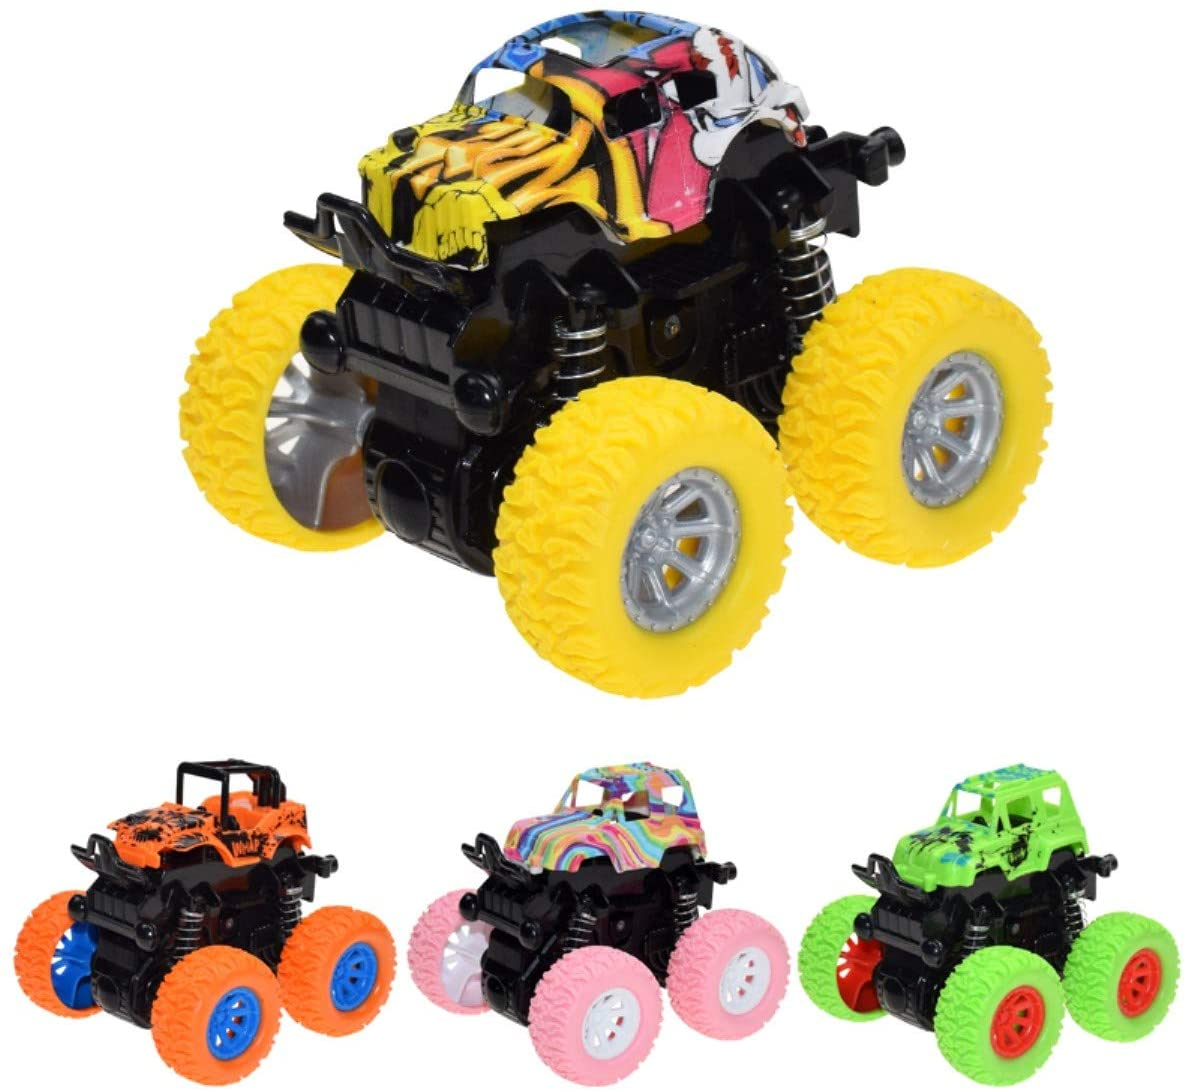 davidamy's gift Transforming Pull Back Model Car, Four-Wheels Drive Off-Road Vehicle, Tipping Stunt Inertial Off-Road Vehicle, Kids Toy (4pcs Set B (one Each Color))